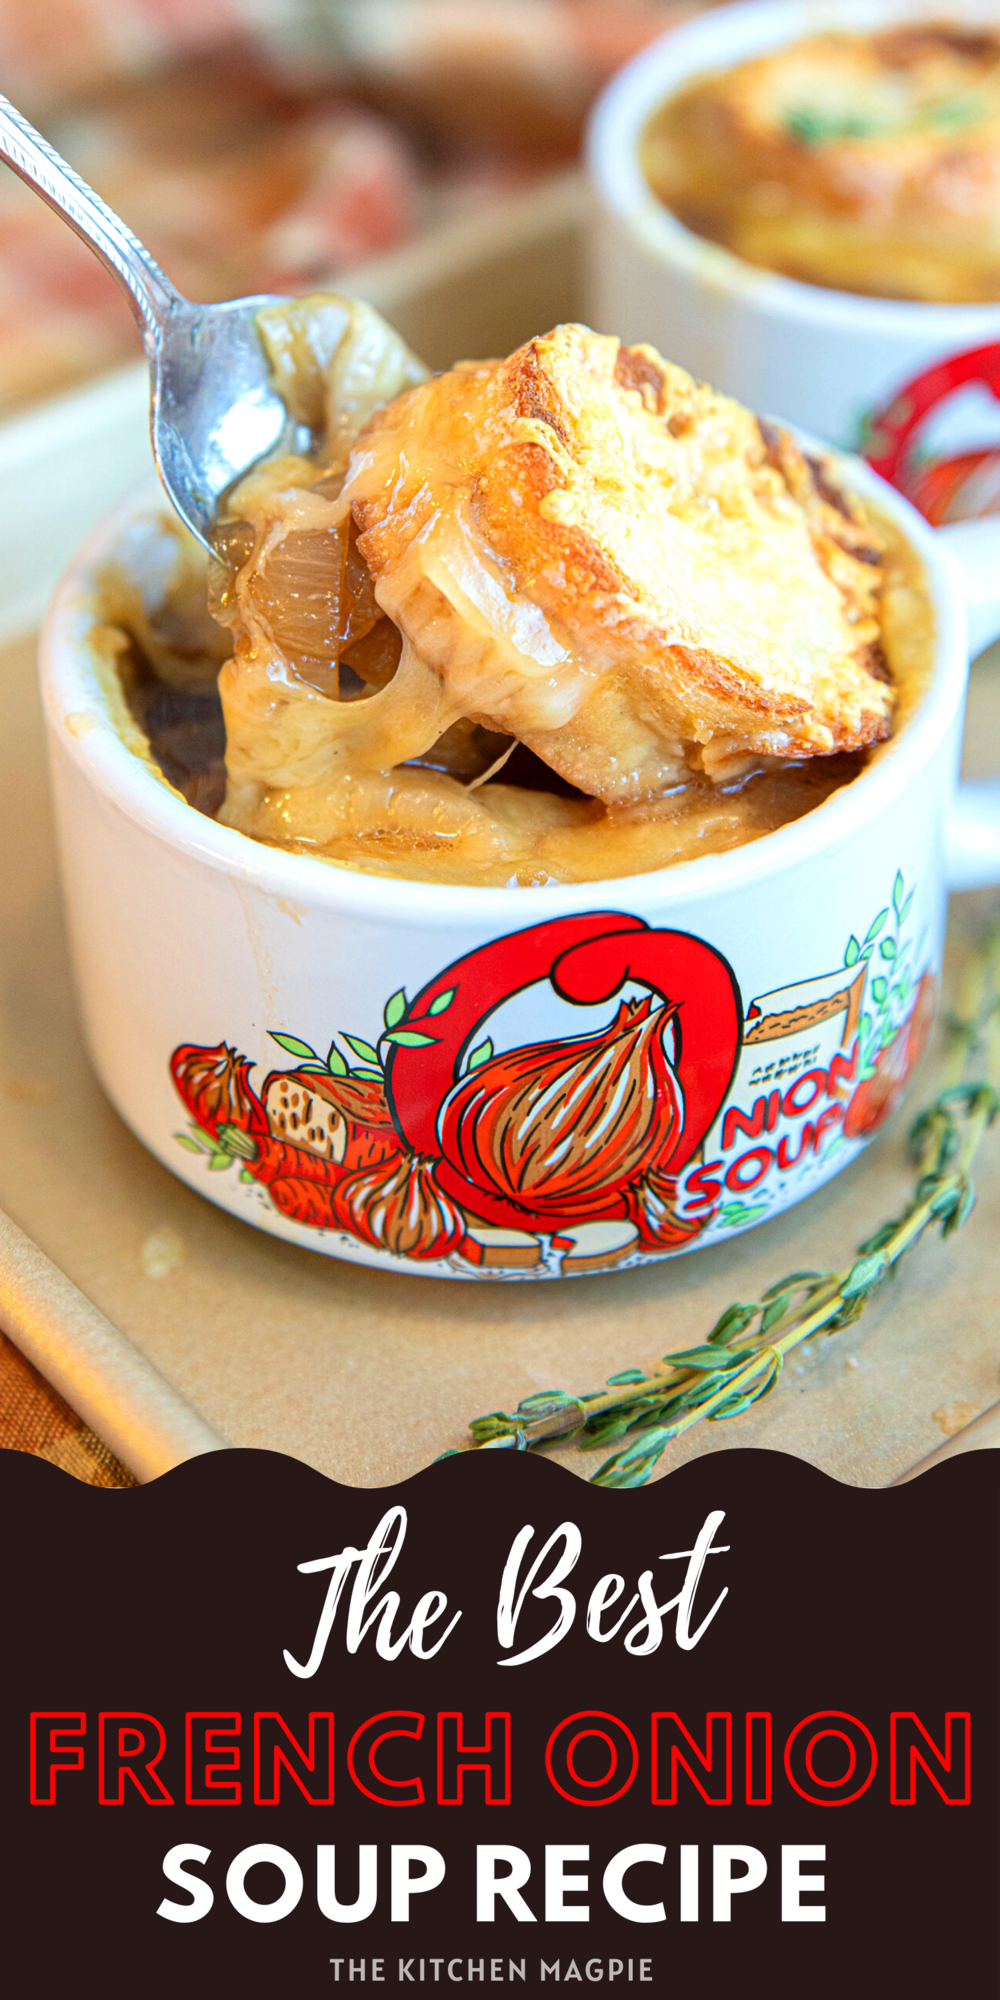 Sweet caramelized onions in a rich beef stock, all topped off with a baguette and melted cheese make this a delicious and classic treat!